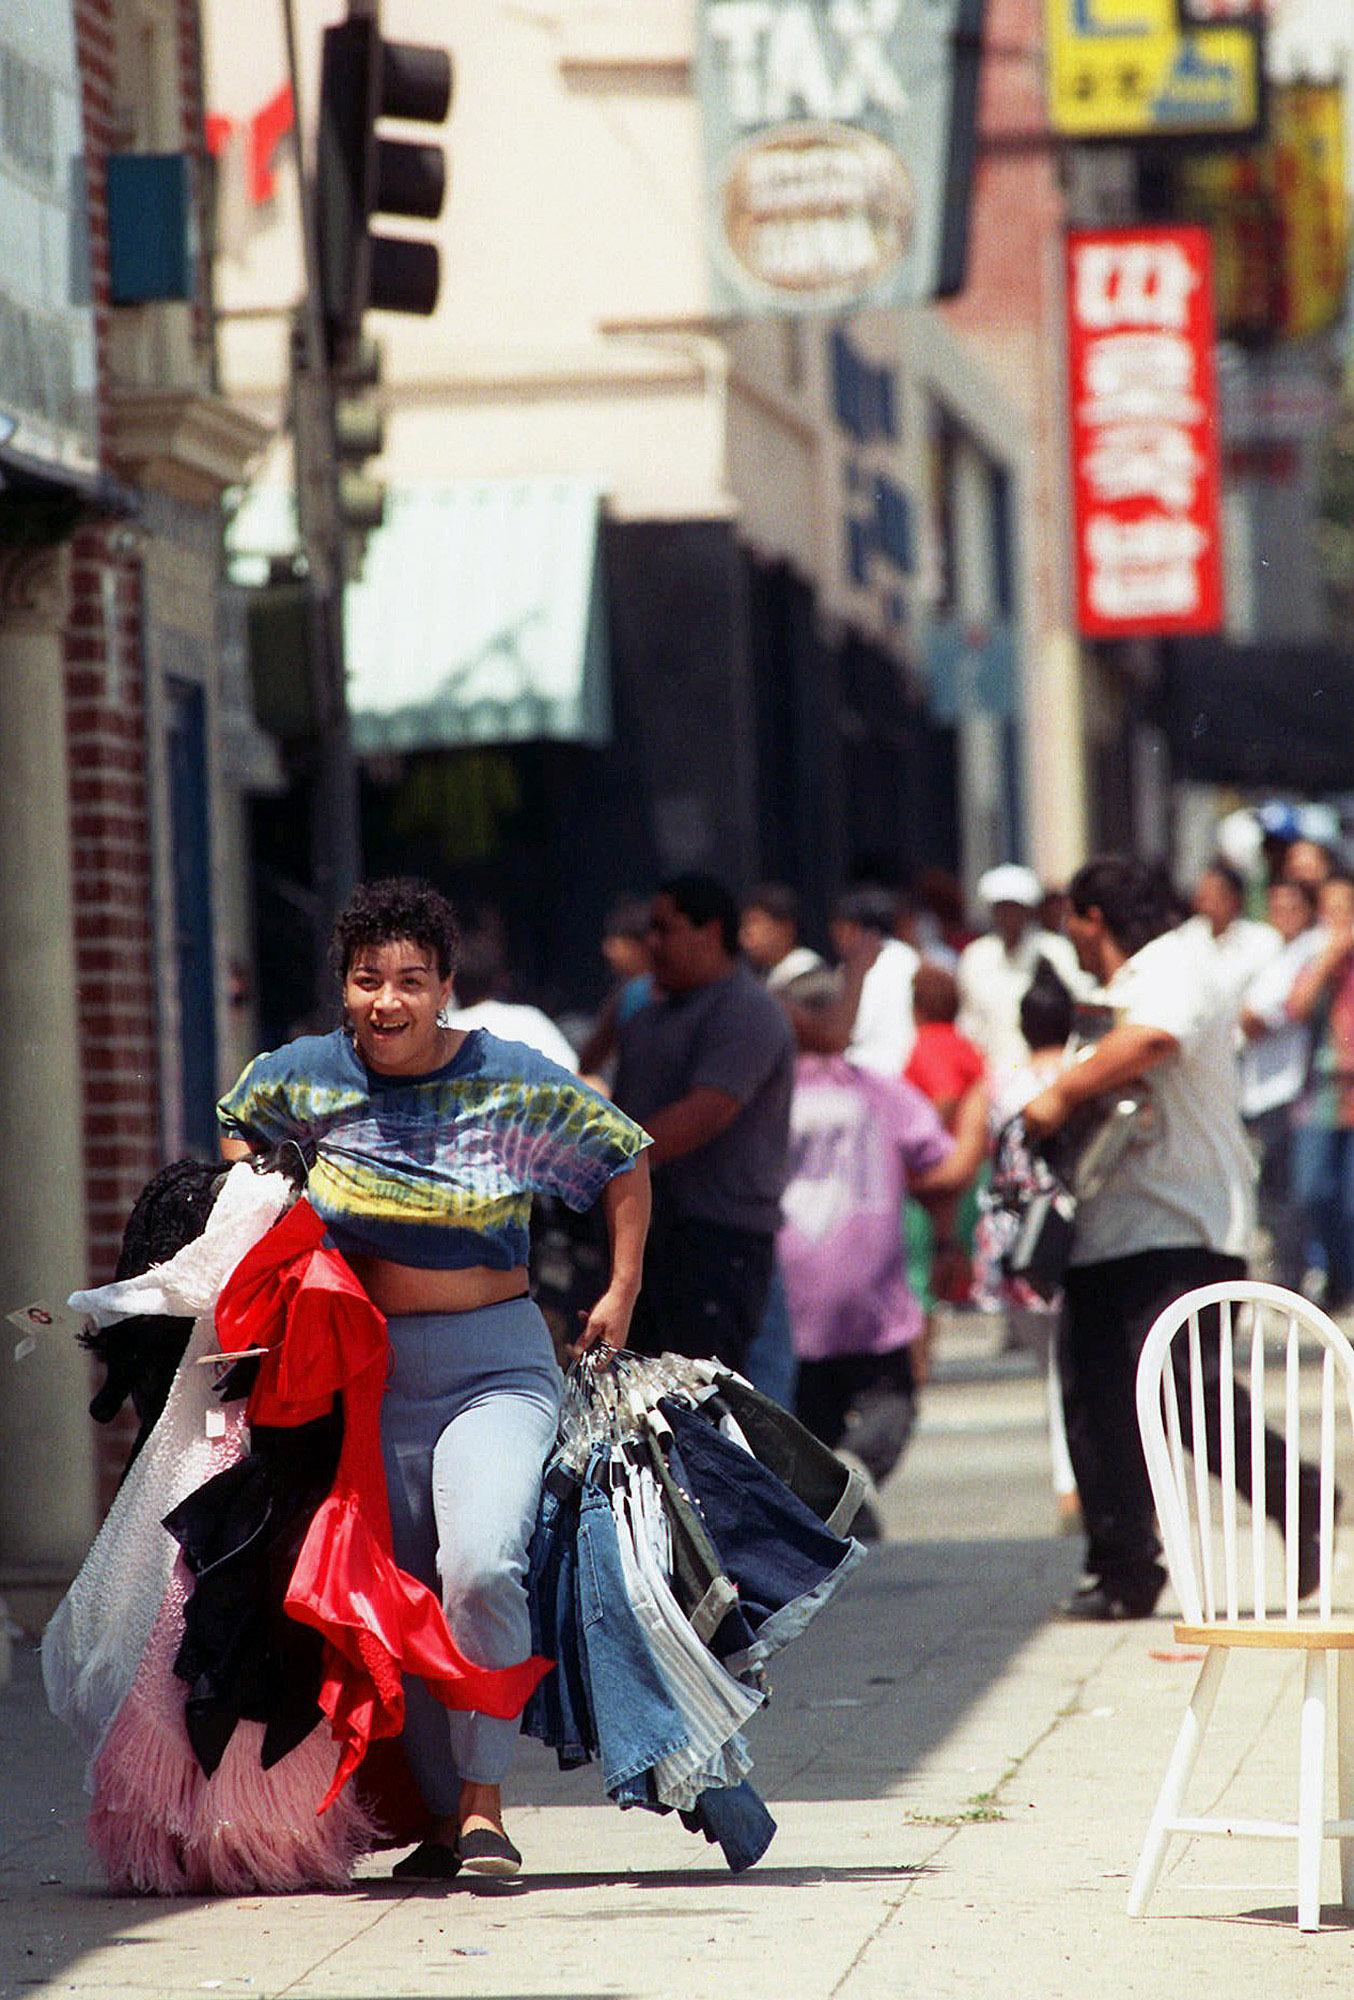 ** ADVANCE FOR FRIDAY, APRIL 26 AND THEREAFTER--FILE ** An unidentified woman sprints down Vermont Ave. with looted clothing in this file photo taken May 1, 1992, in South central Los Angeles. On April 29, 1992, four white police officers were declared innocent in the beating of black motorist Rodney King, and Los Angeles erupted in the deadliest riots of the century. Three days later, 55 people were dead and more than 2,000 injured. Fires and looting had destroyed $1 billion worth of property. (AP Photo/Bob Galbraith)